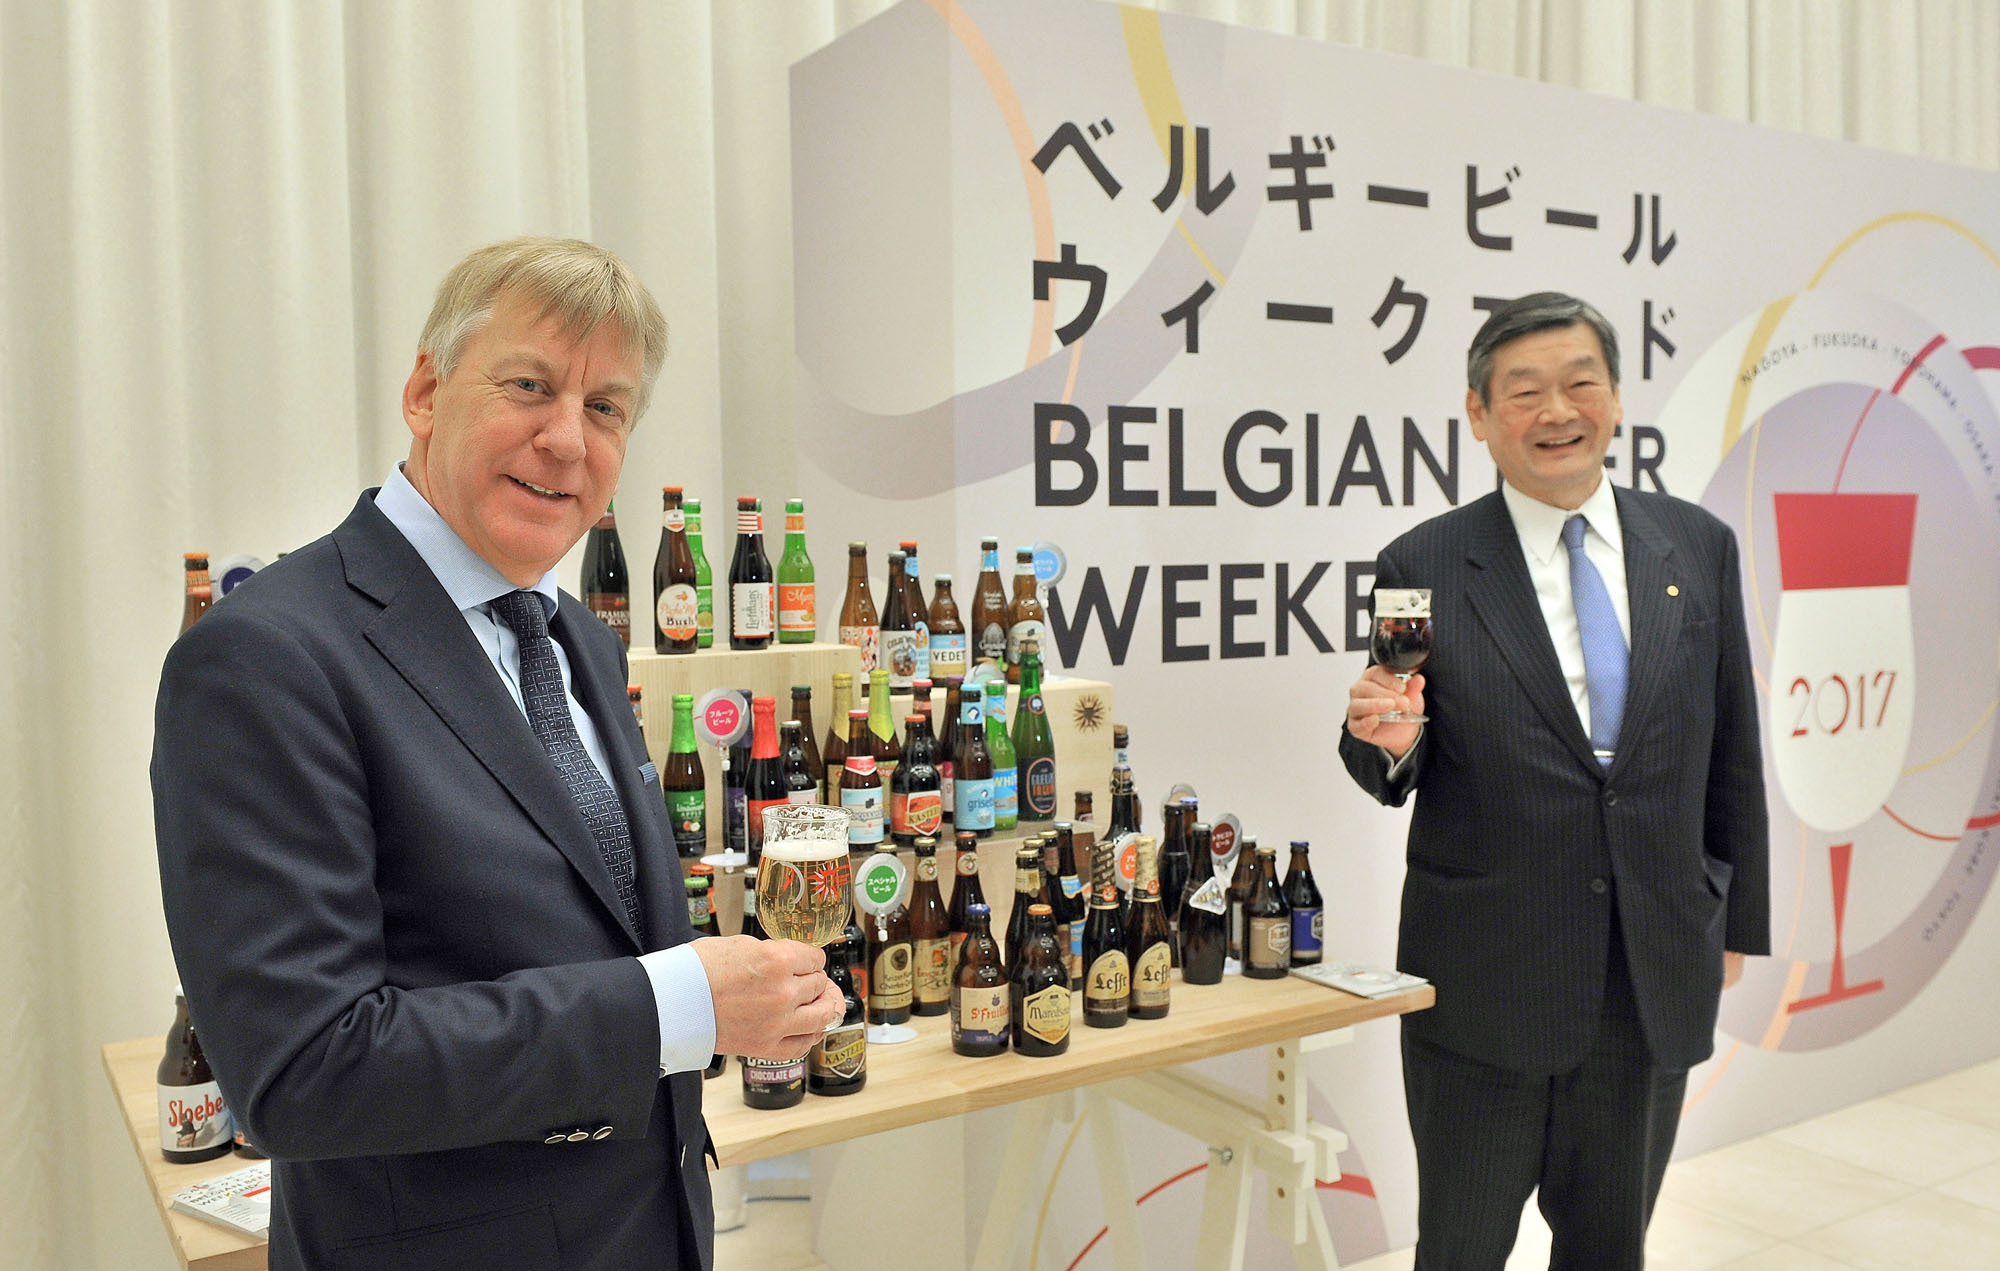 Belgium's Ambassador Gunther Sleeuwagen (left), honorary chairman of the Belgian Beer Weekend committee, raises his glass with Konishi Brewing Co. President and Chairman of the committee Shintaro Konishi at a news conference to promote Belgian Beer Weekend 2017 at the Belgian embassy in Tokyo on March 16. Belgium Beer Weekend kicks off in Nagoya on April 26 before moving to seven other cities and ending in Tokyo on Sept. 18. | YOSHIAKI MIURA